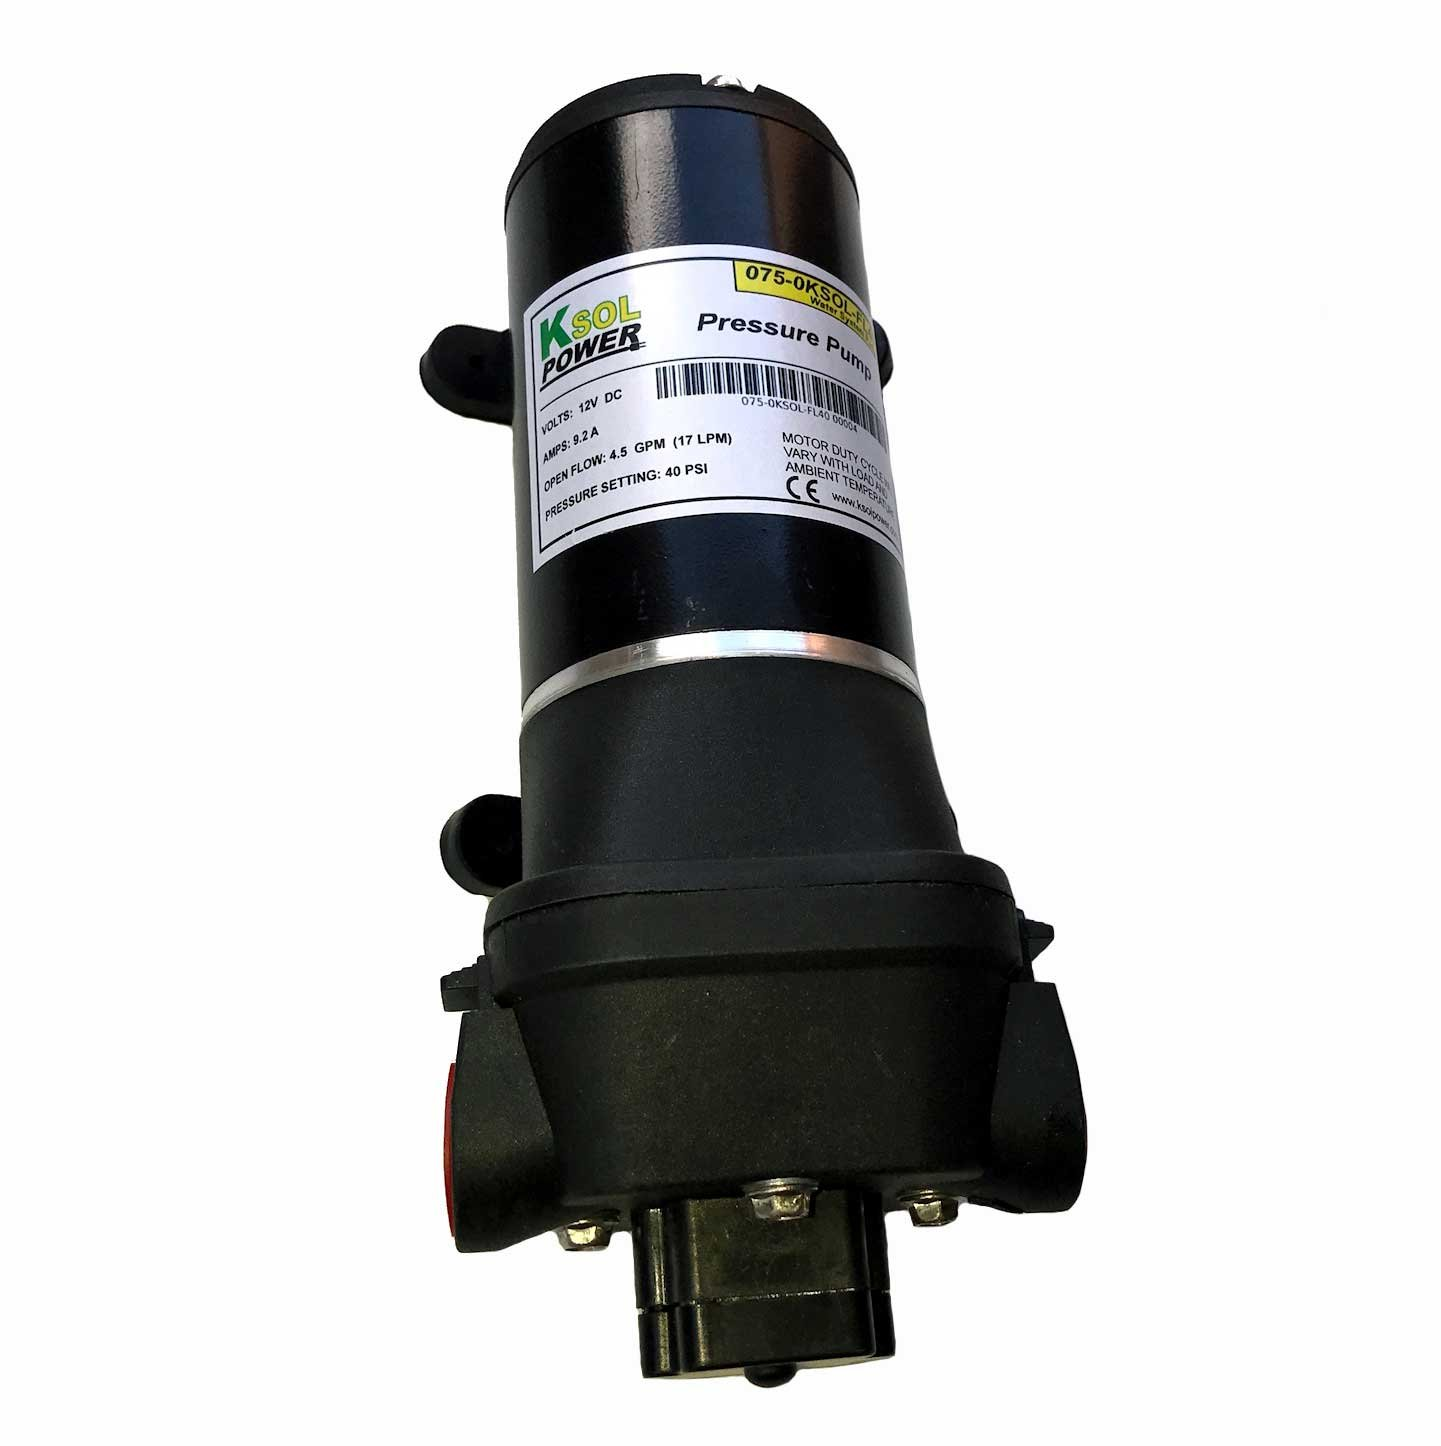 Surface Diaphragm Water Pump - 12 Volt DC, 9.2 Amp, 40 PSI, 4.5 GPM, 1/2'' Hose Barb Fittings, Filter, KSOL Power